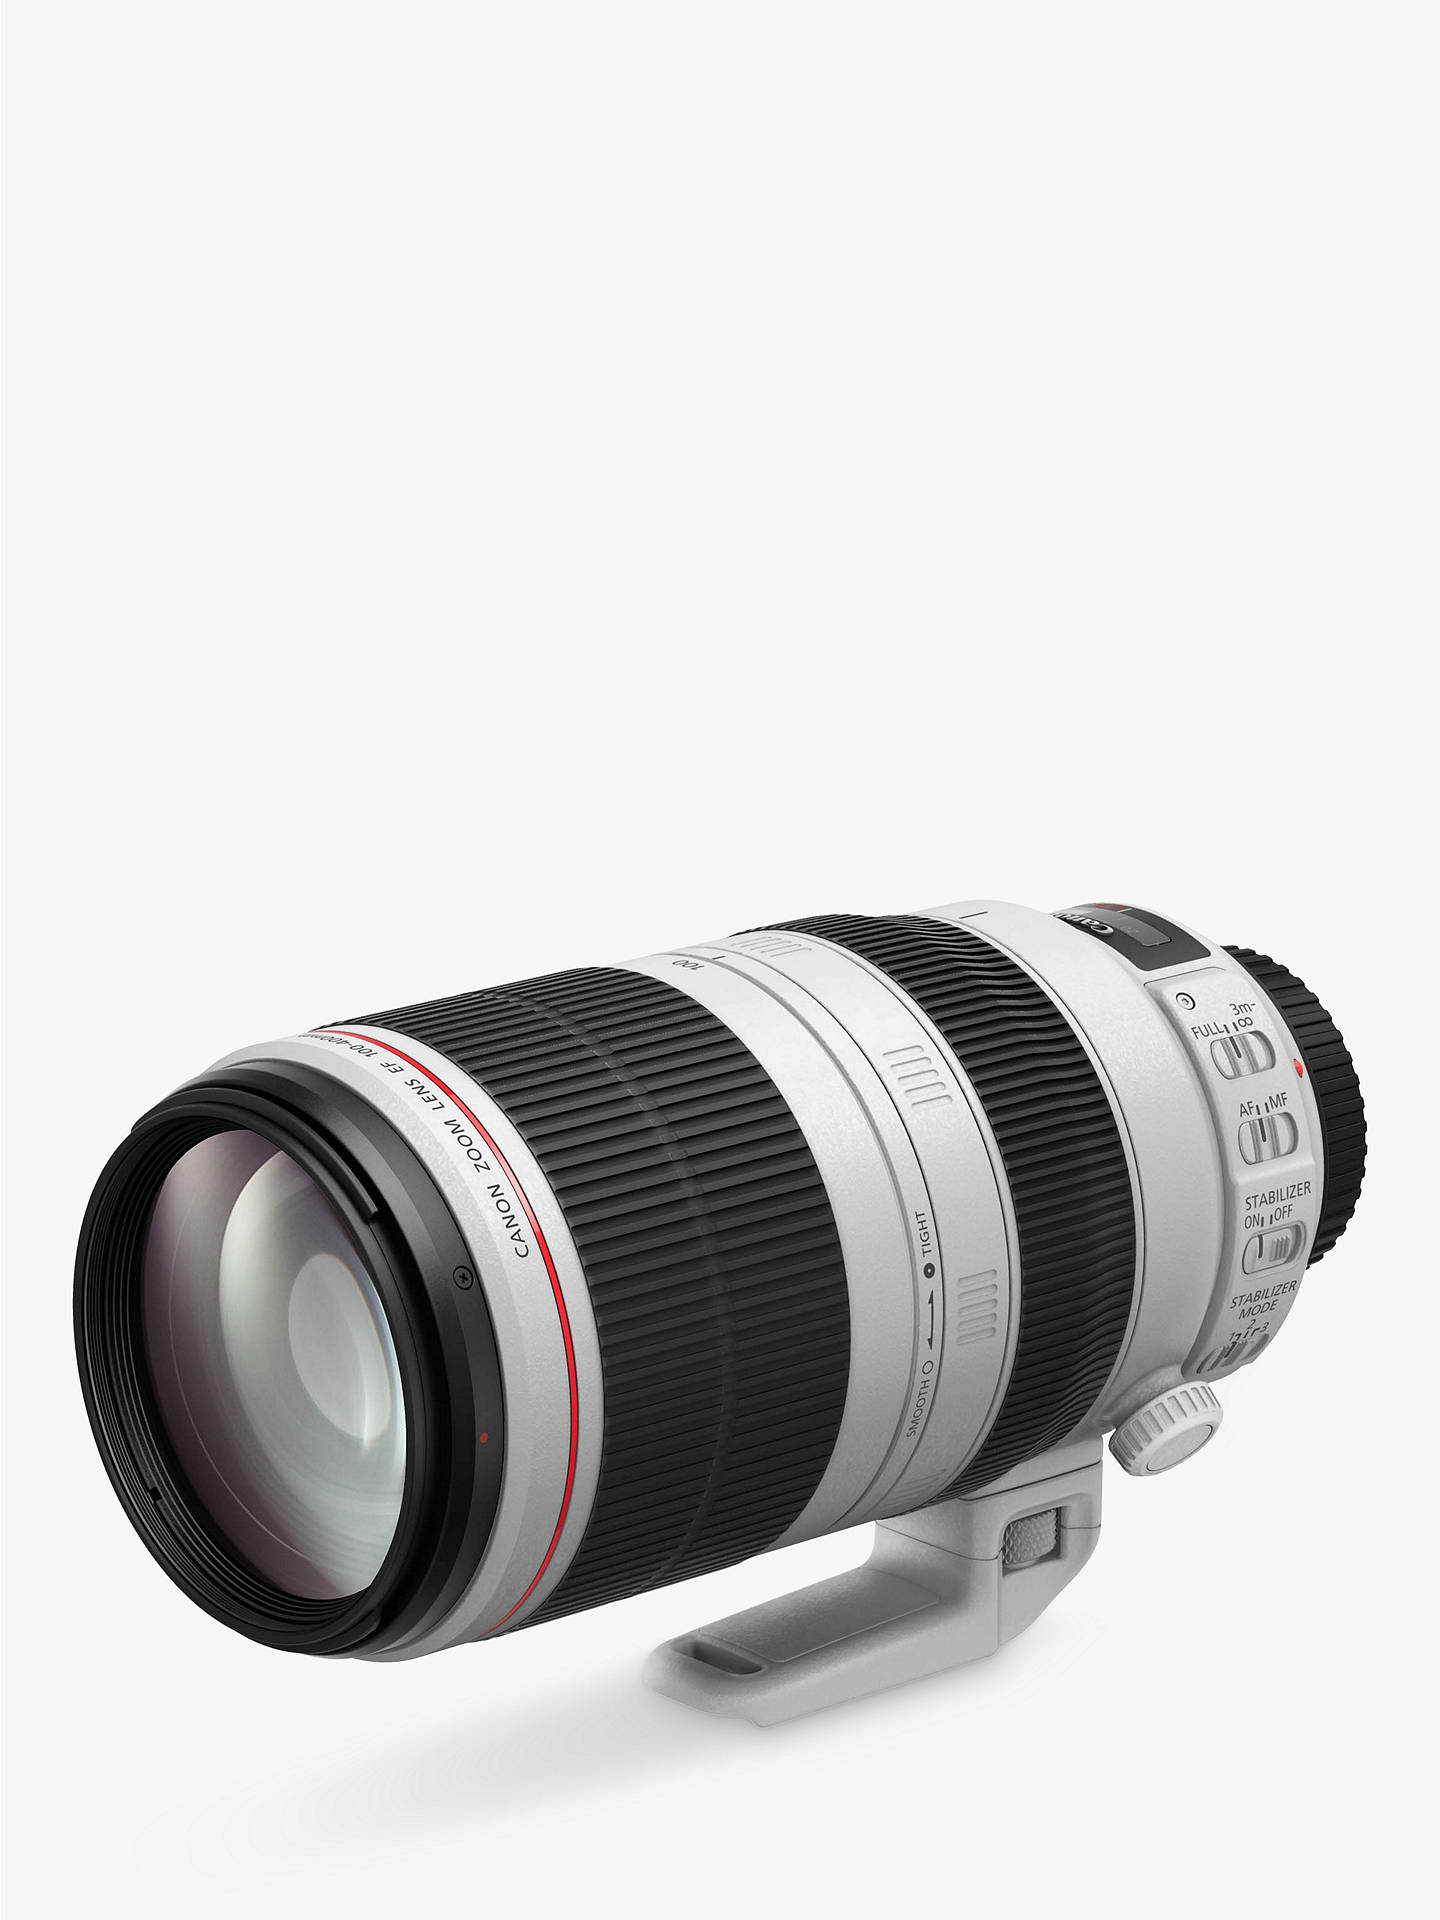 Canon EF 100-400mm f/4 5-5 6L IS II USM Telephoto Lens